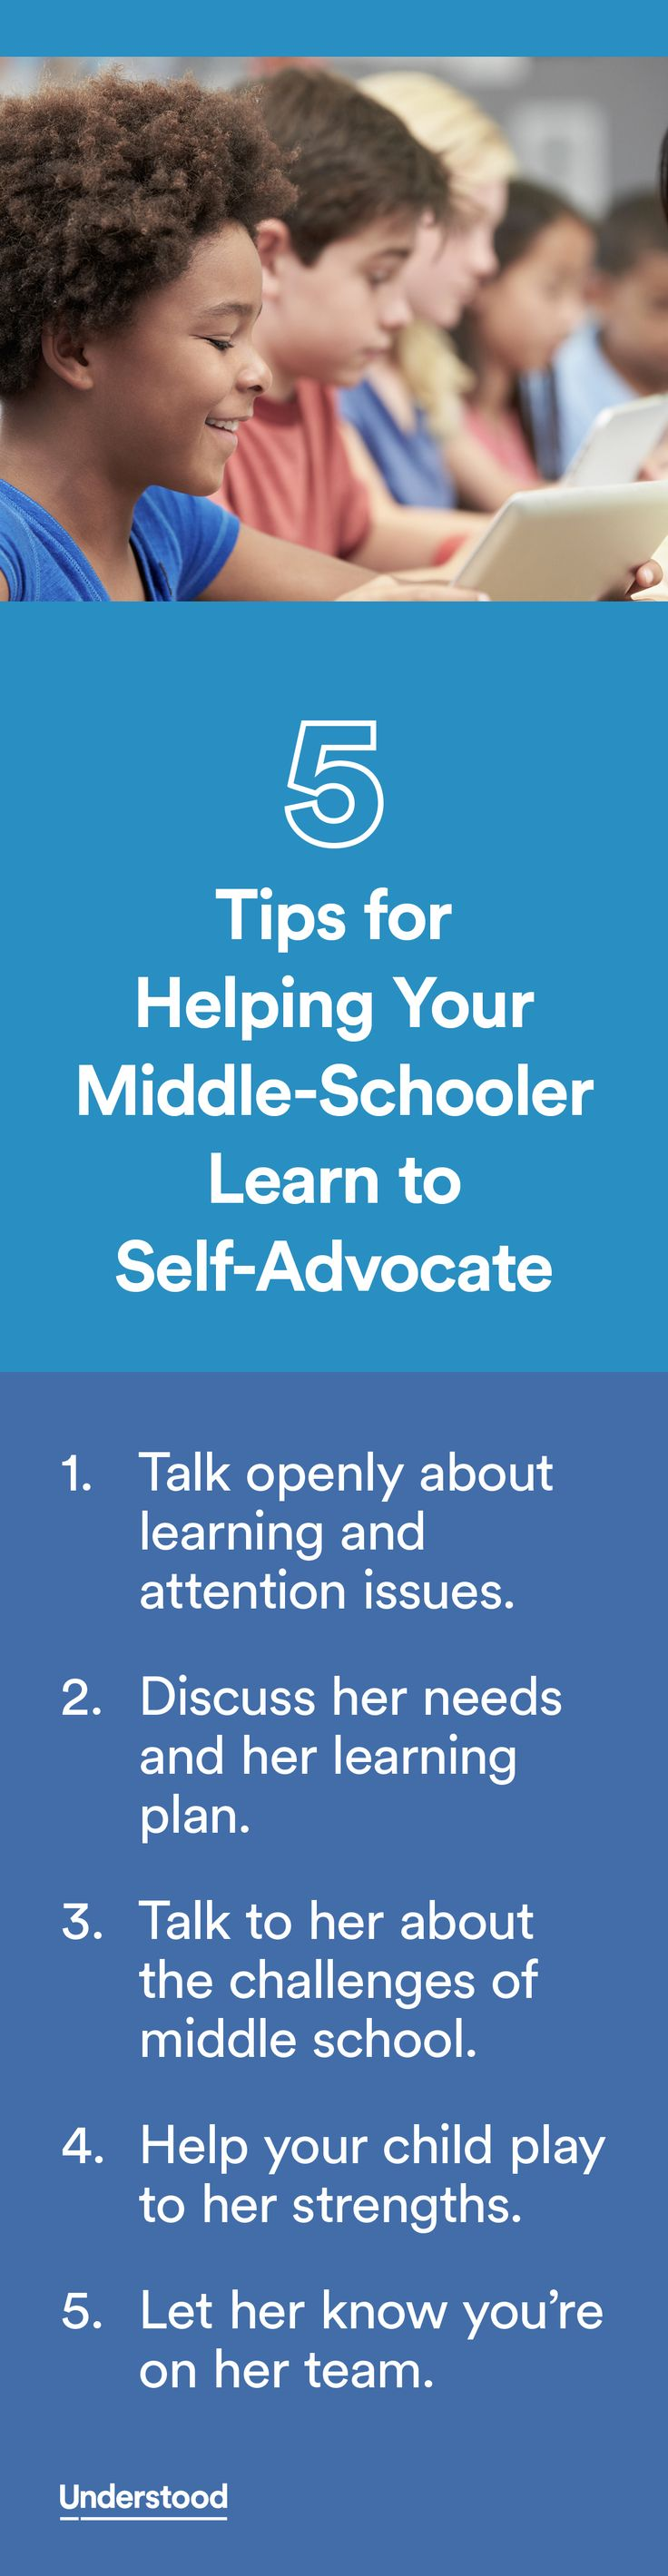 Middle school can present challenges for kids with learning and attention issues. That makes it more important than ever for your child to practice self-advocacy skills.